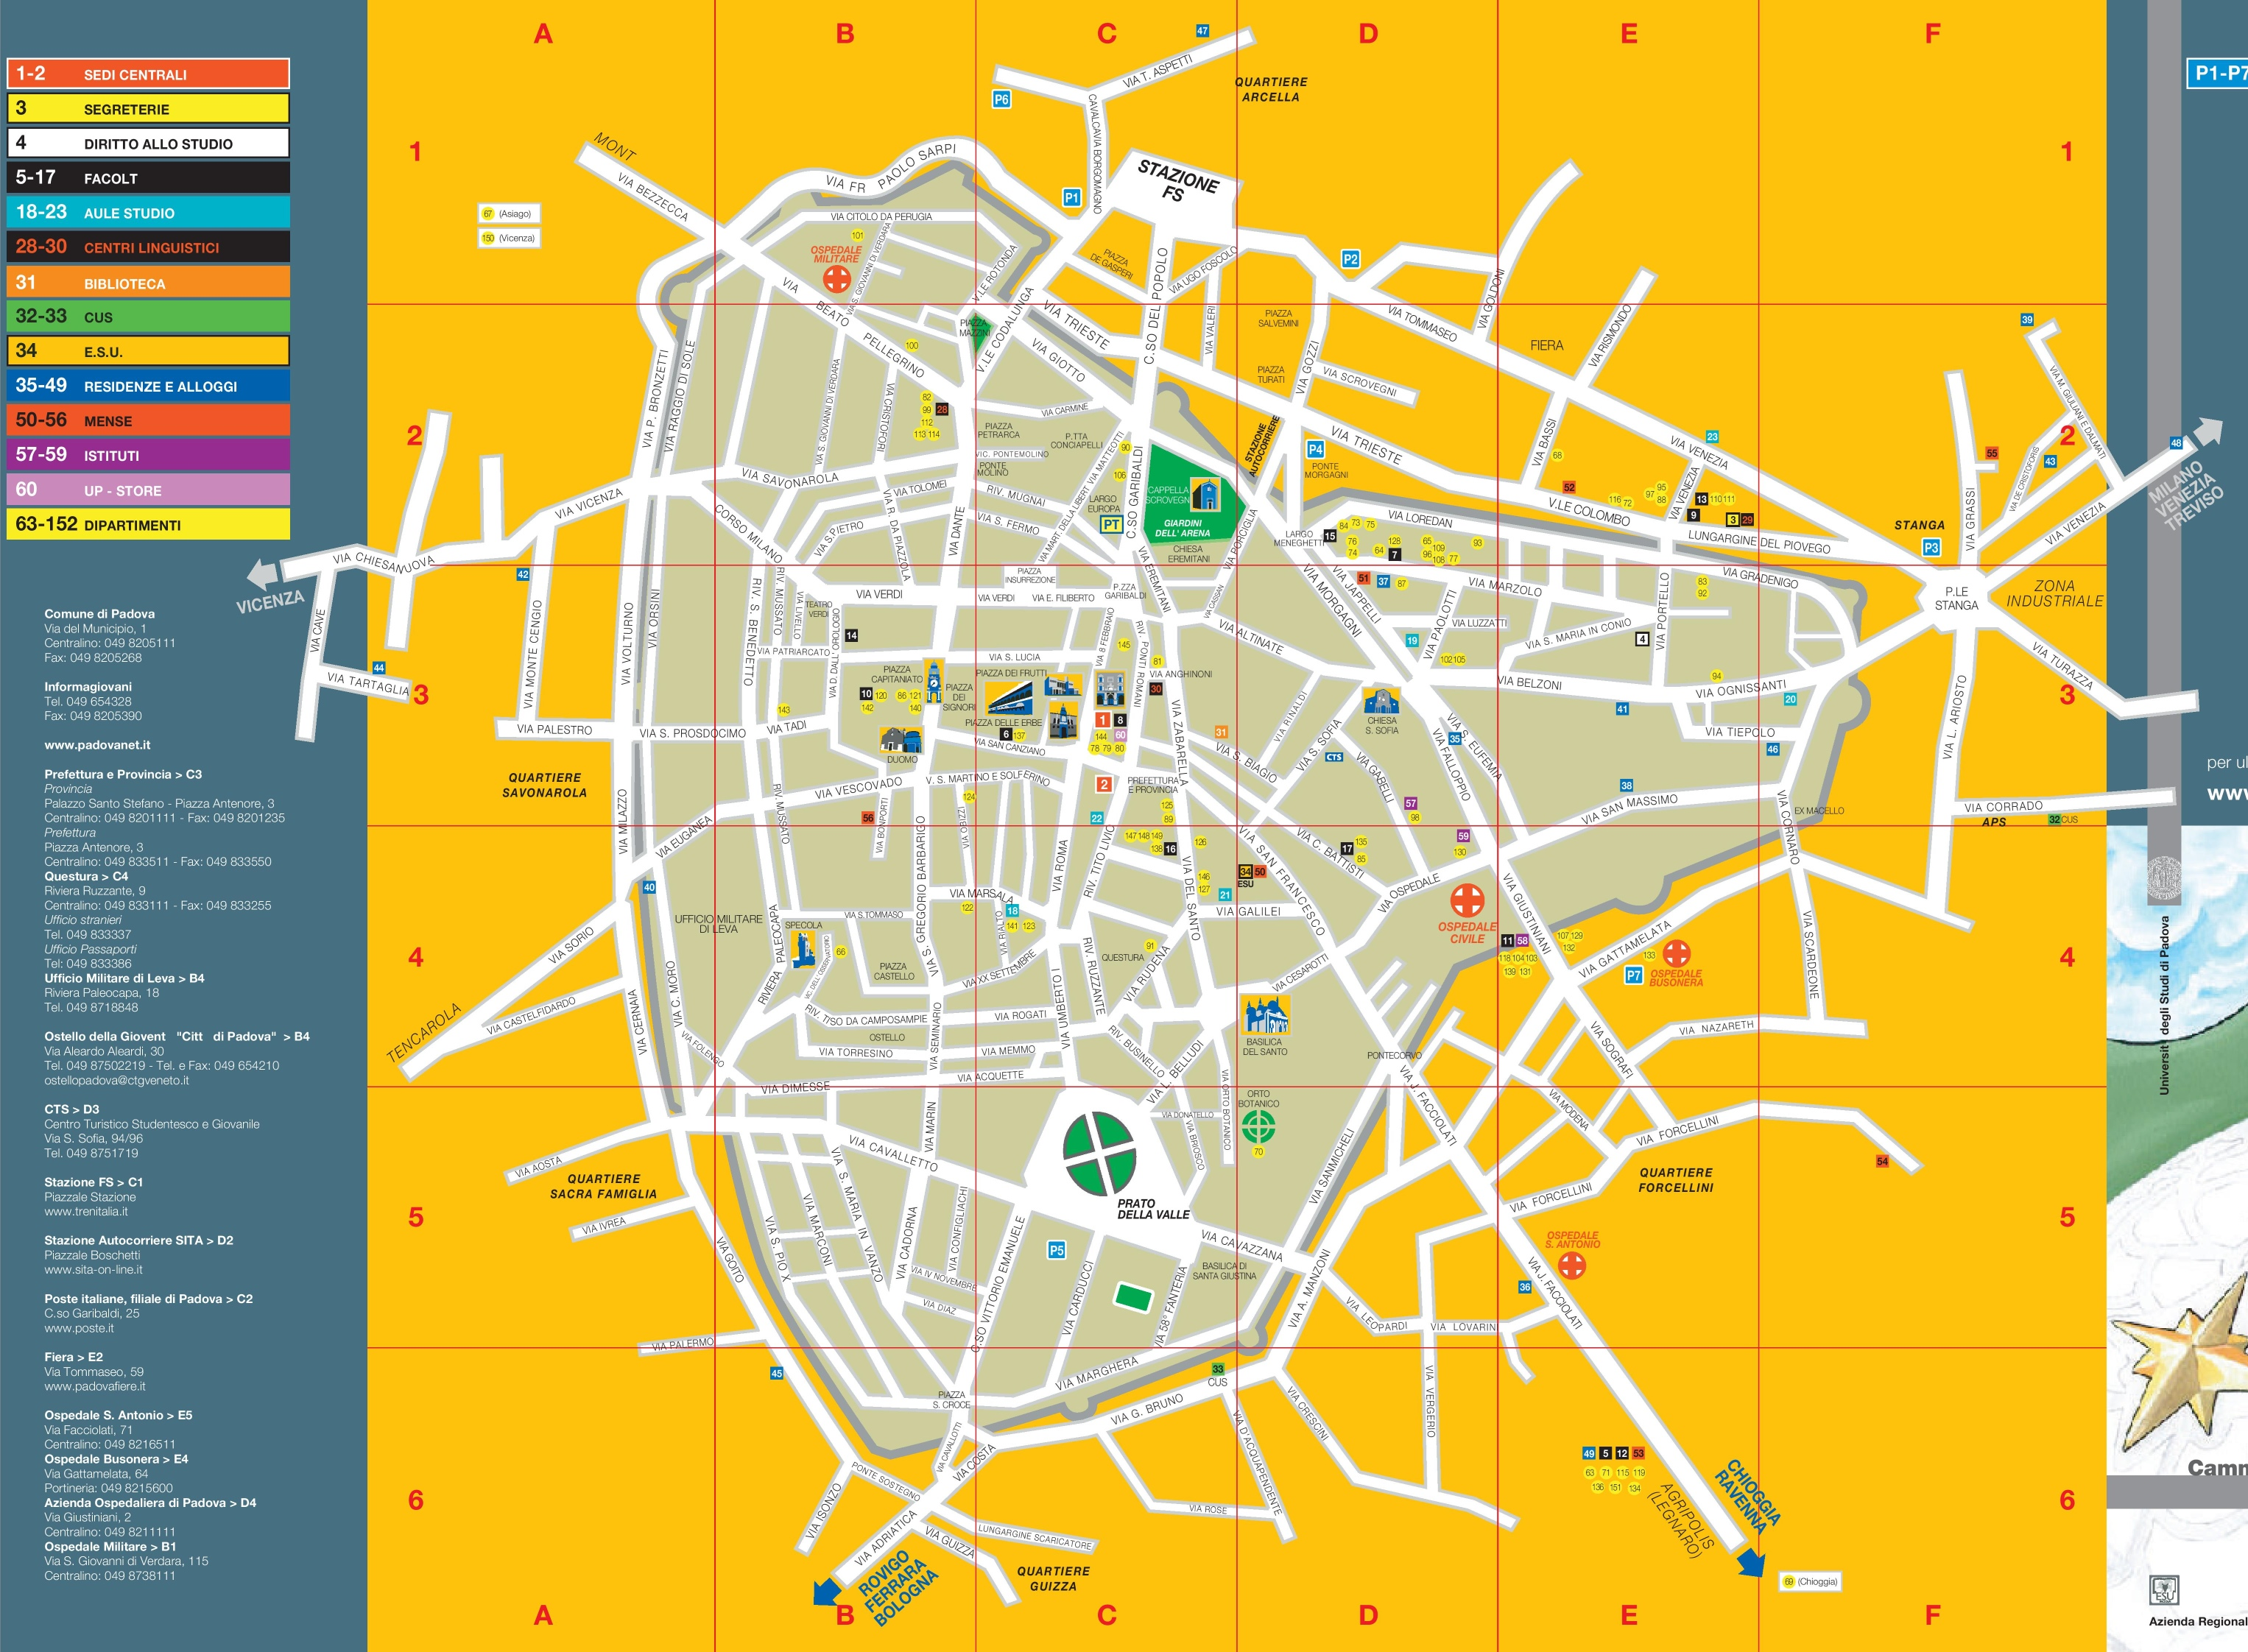 Padova tourist attractions map